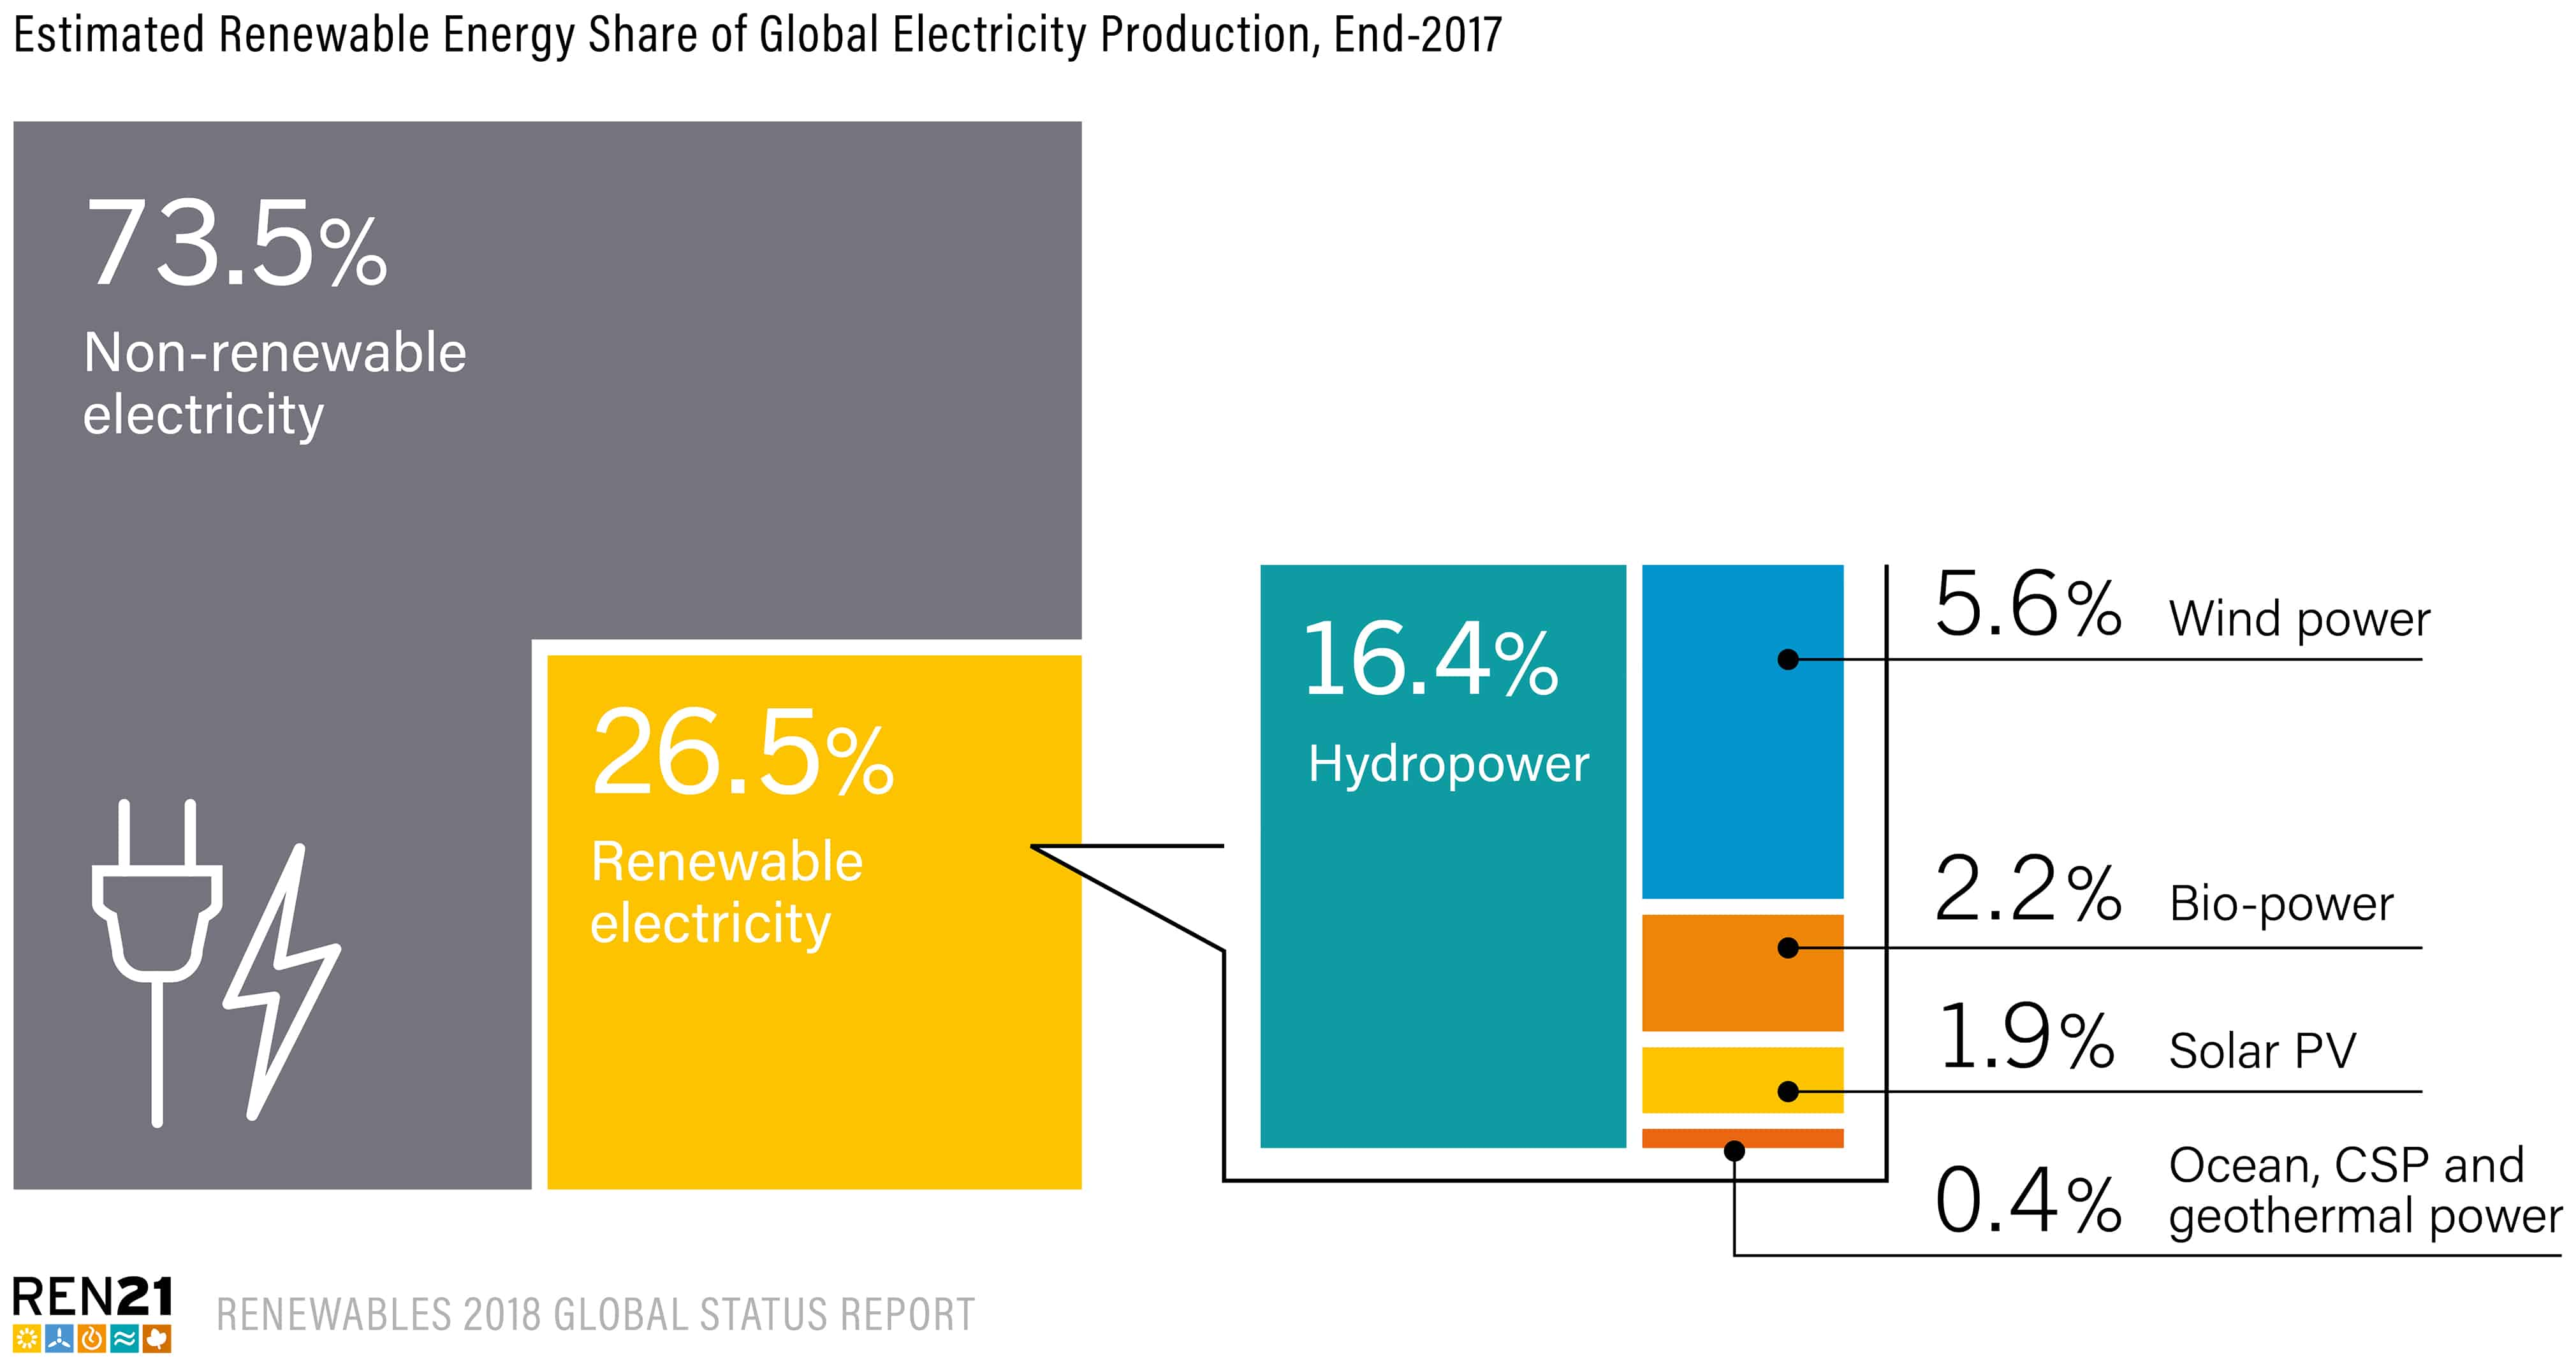 Estimated Renewable Energy Share of Global Electricity Production End 2017